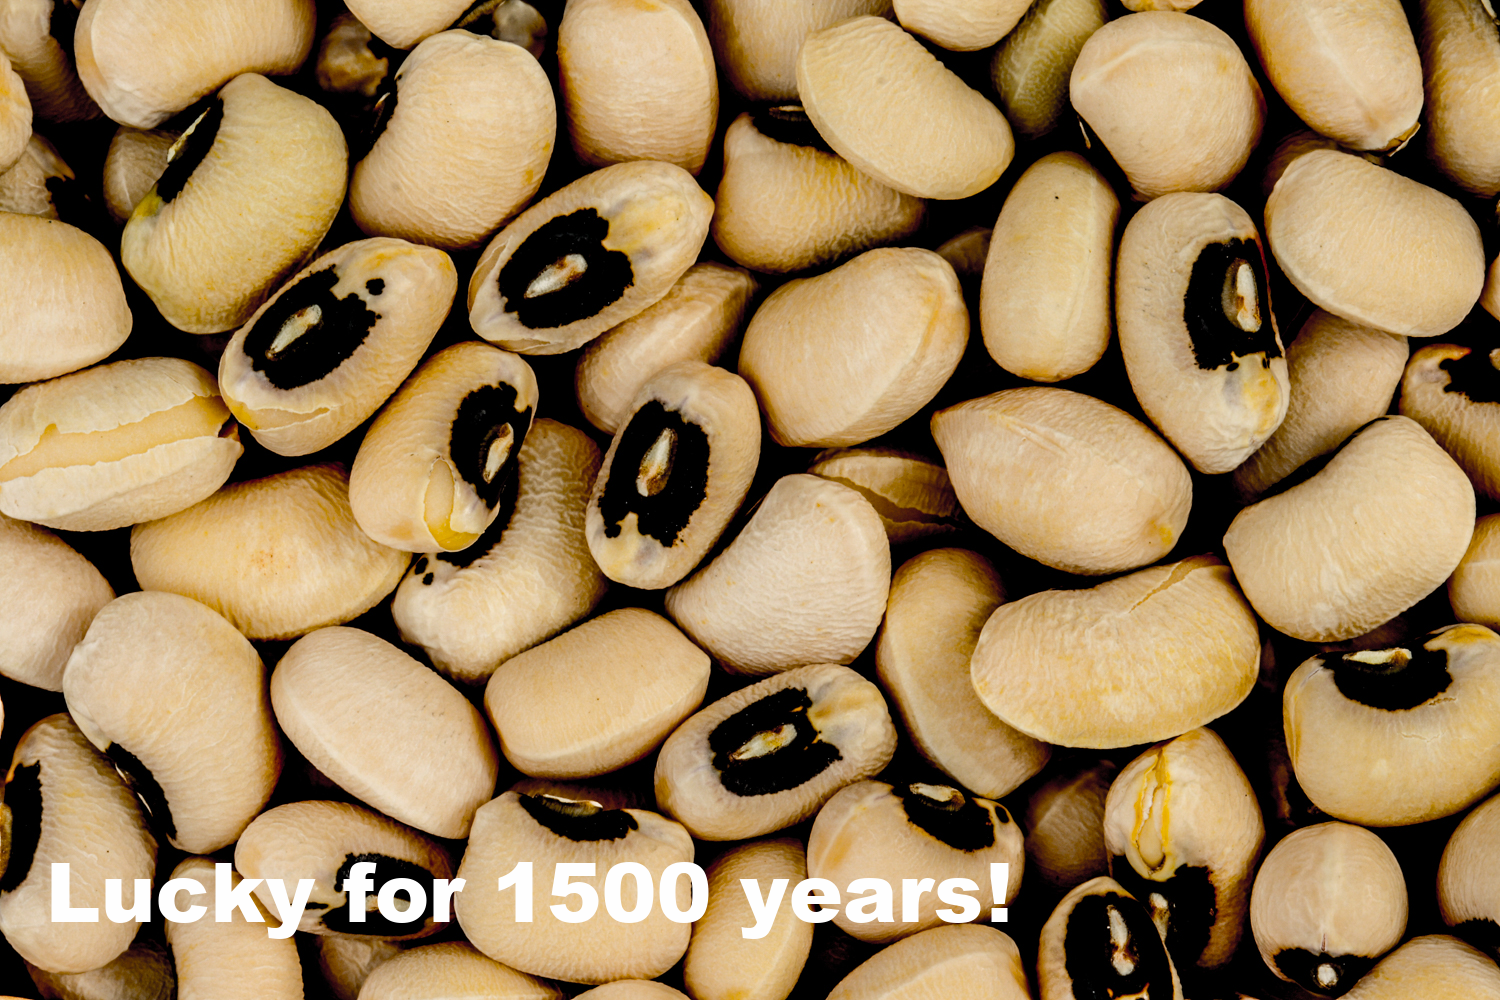 """Black-eyed peas  ( Vigna unguiculata subsp. unguiculata .) Photo credit: """"BlackEyedPeas"""" by Toby Hudson - Own work. Licensed under CC BY-SA 3.0 via Commons - https://commons.wikimedia.org/wiki/File:BlackEyedPeas.JPG#/media/File:BlackEyedPeas.JPG"""